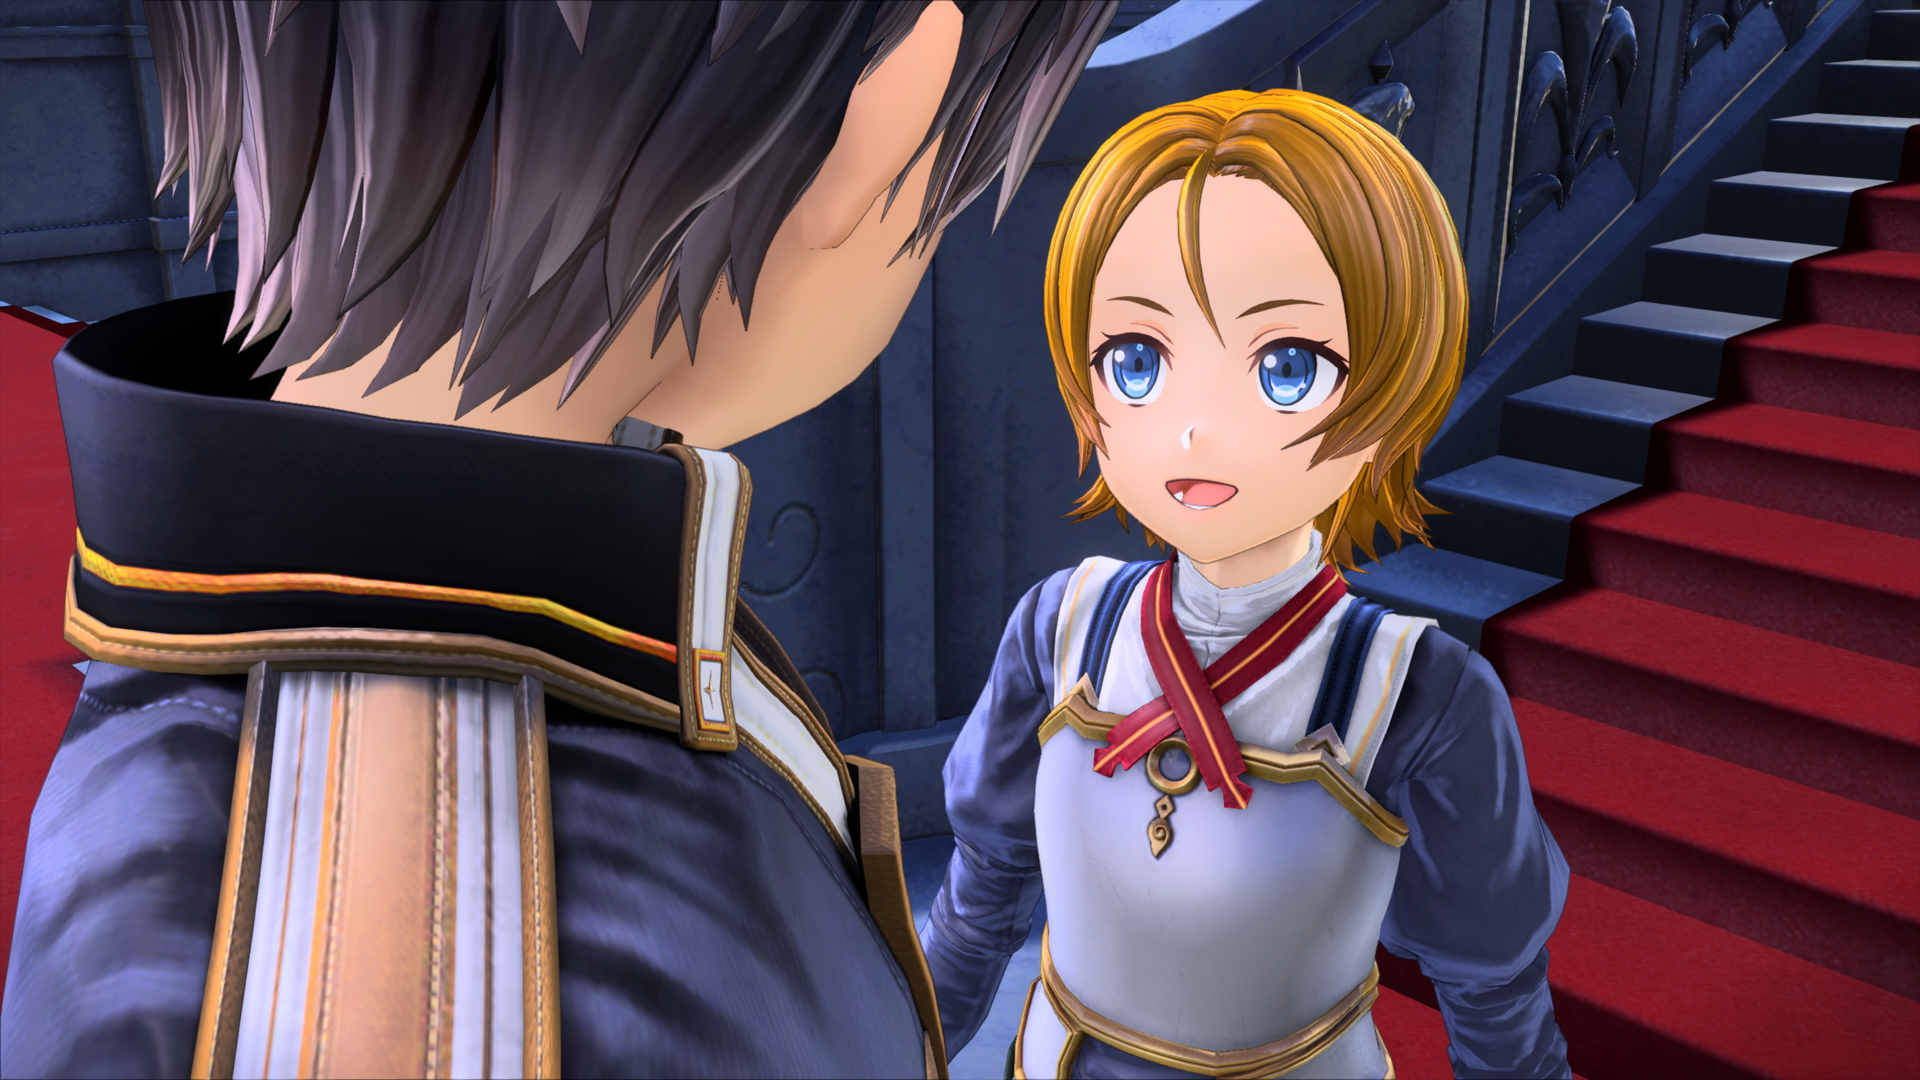 SWORD ART ONLINE Alicization Lycoris Story Trailer Released